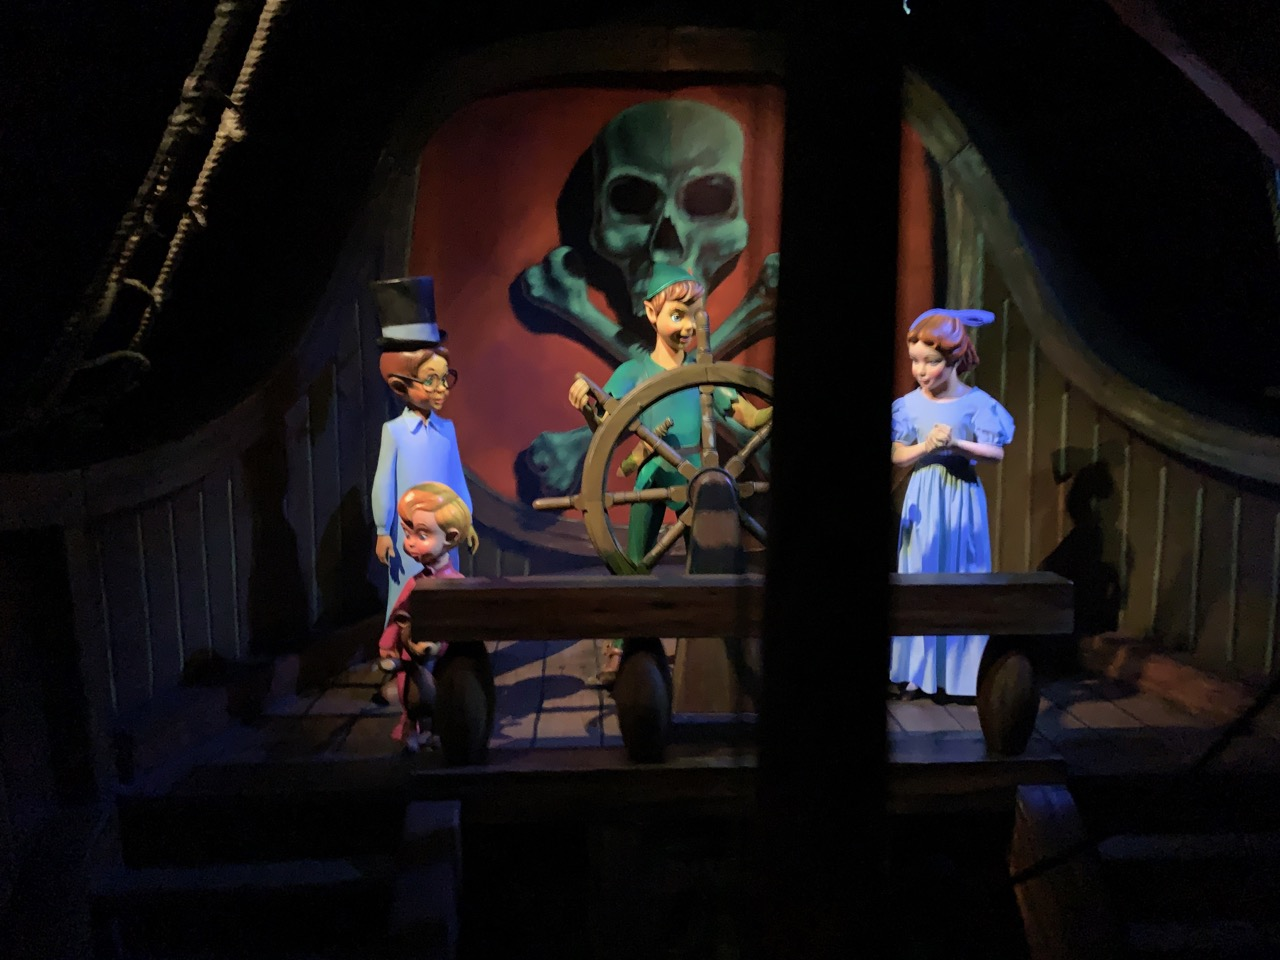 disney world trip report early summer 2019 day five 42 peter pan.jpeg